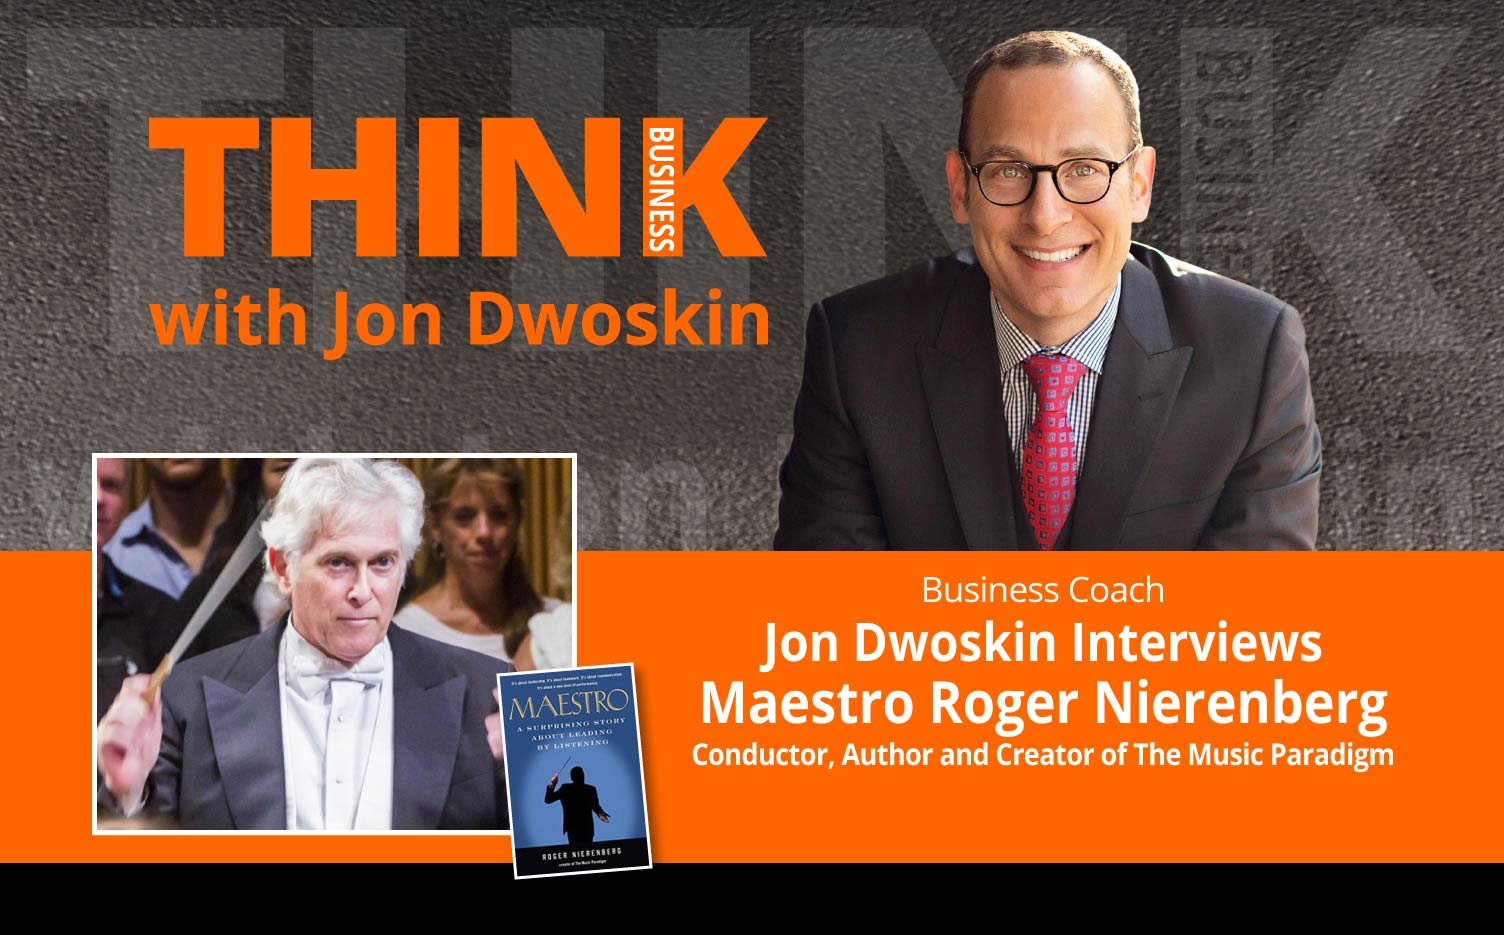 THINK Business Podcast: Jon Dwoskin Interviews Maestro Roger Nierenberg, Conductor, Author and Creator of The Music Paradigm